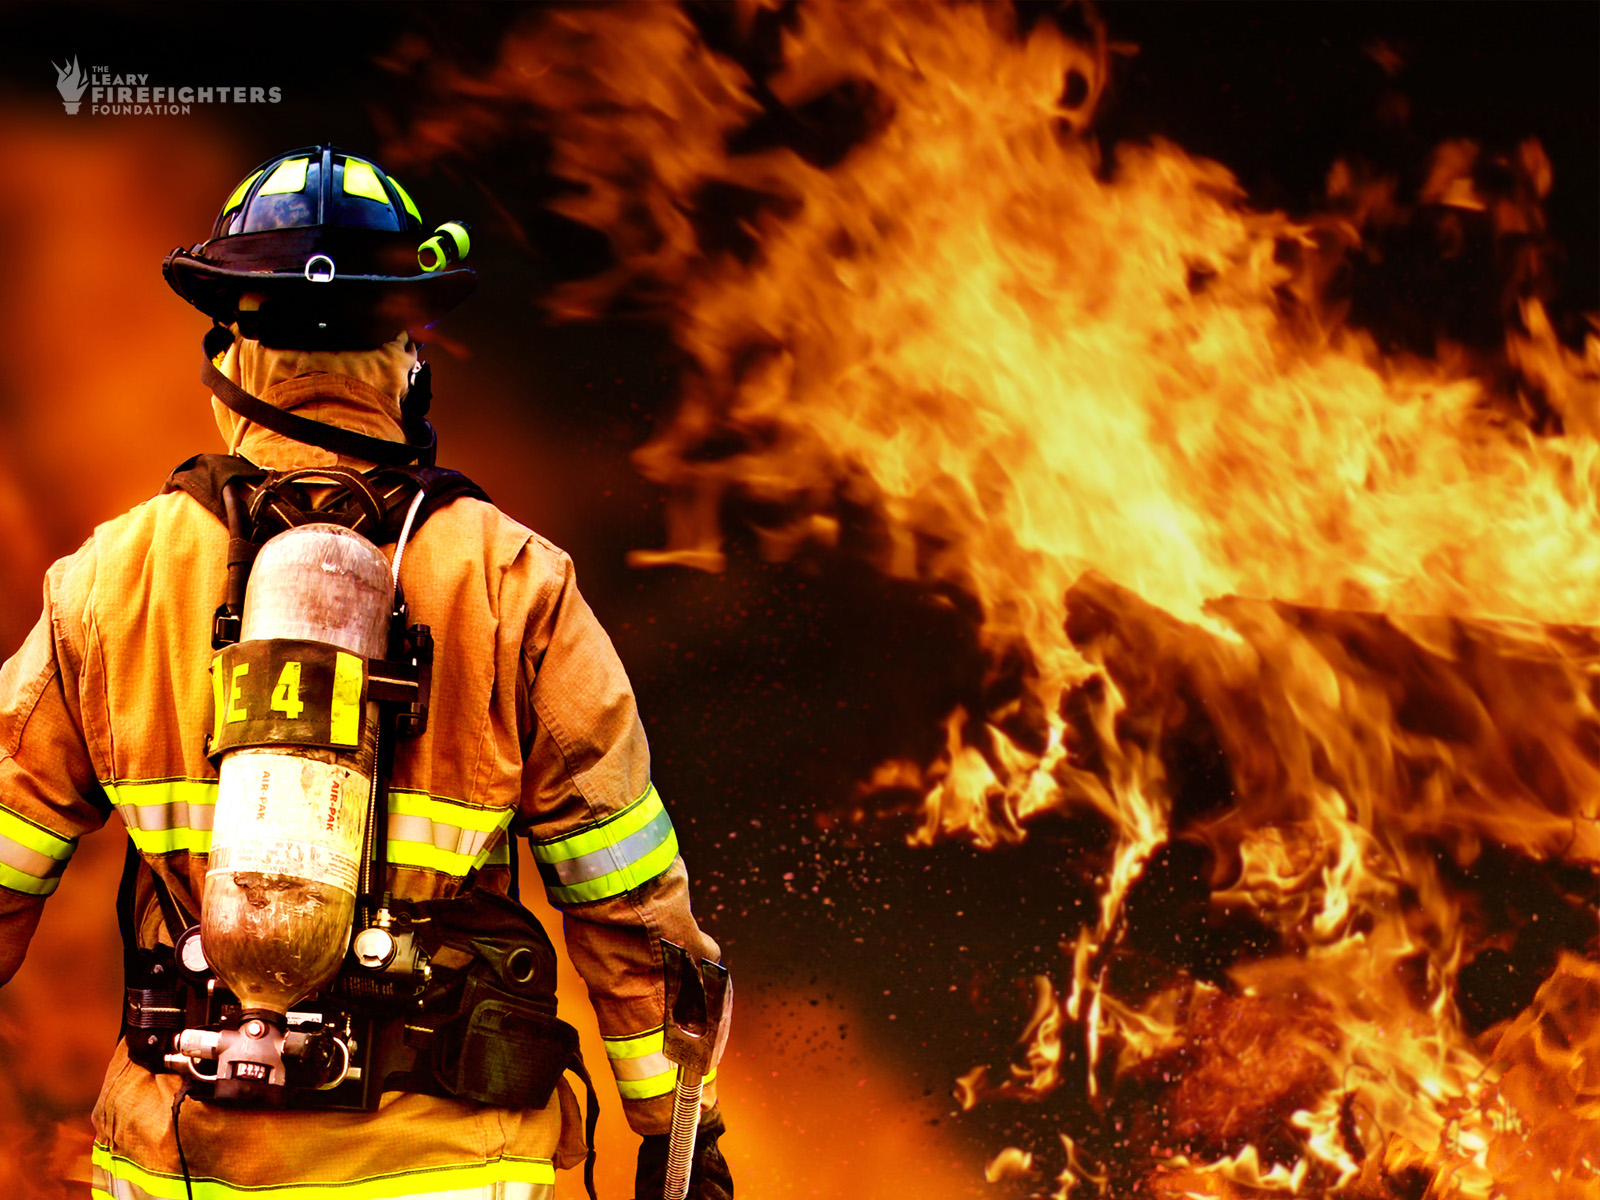 Volunteer Firefighter Wallpaper Twitter backgrounds 1600x1200